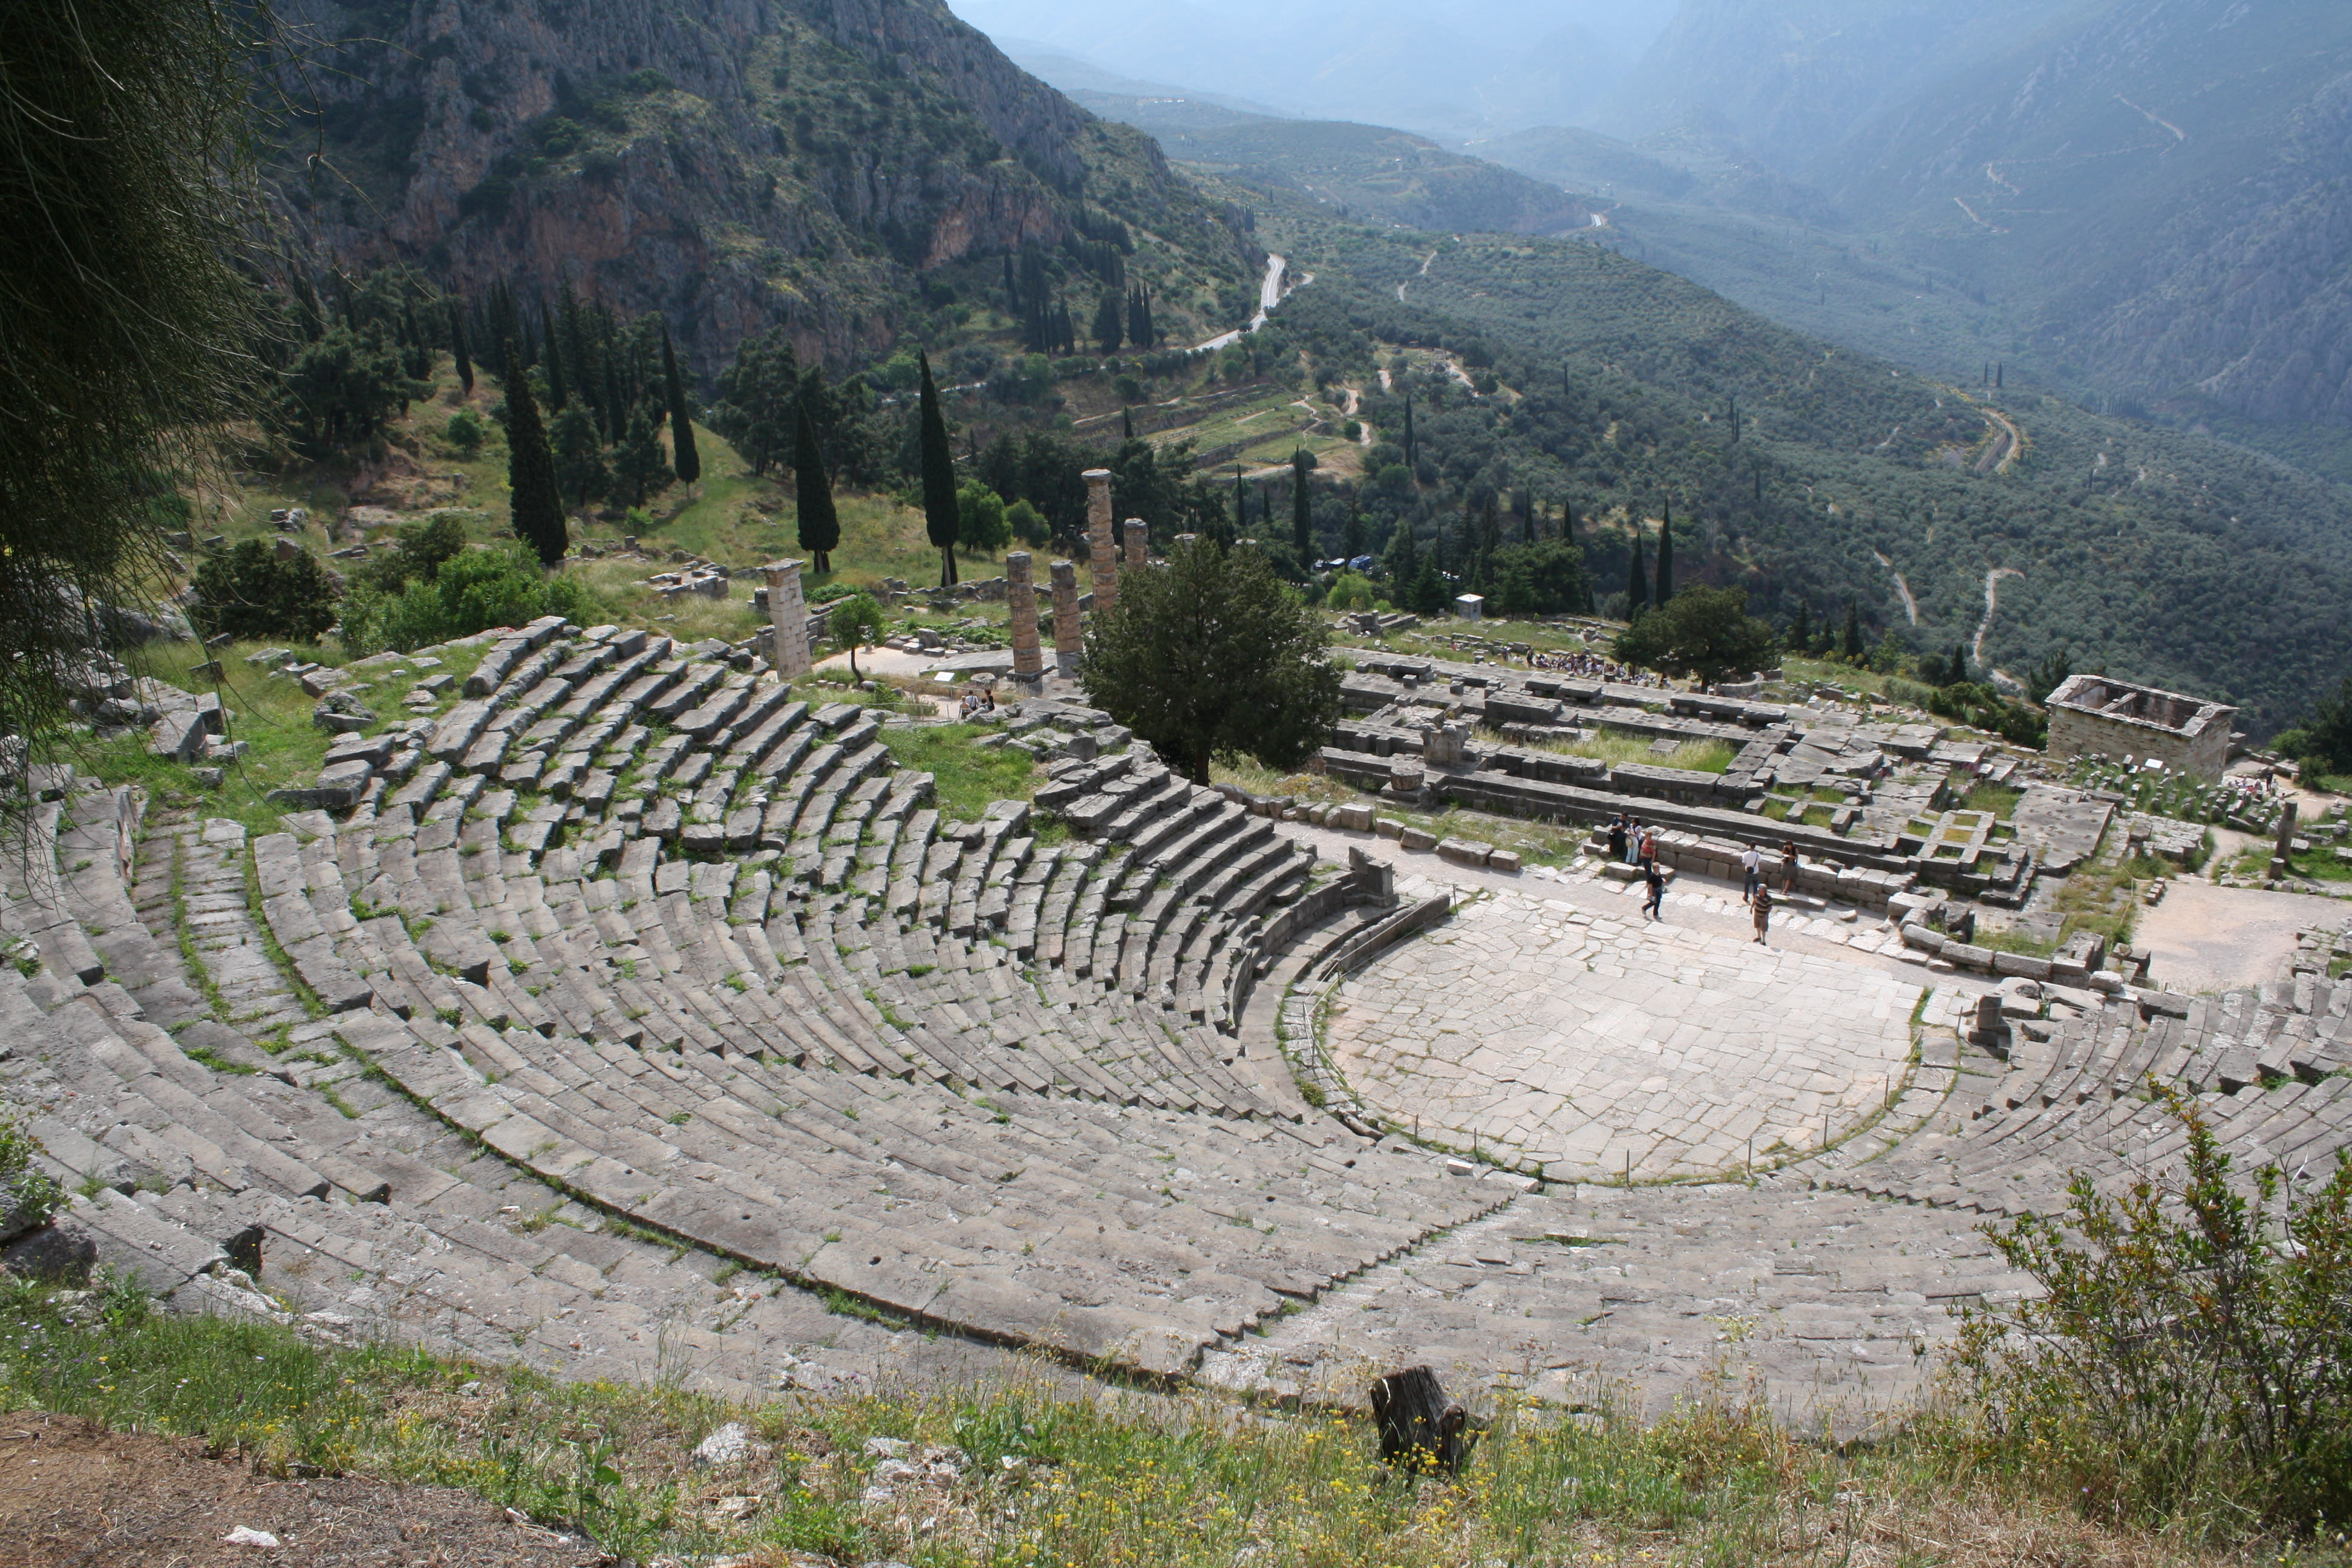 greek theatre history The cult ceremonies of the fertility and wine god dionysus are directly connected to the origins of the greek theatre these performances included female devotees who danced themselves into a state of trance besides dancing, they also ripped apart and devoured the raw flesh of sacrificial animals.